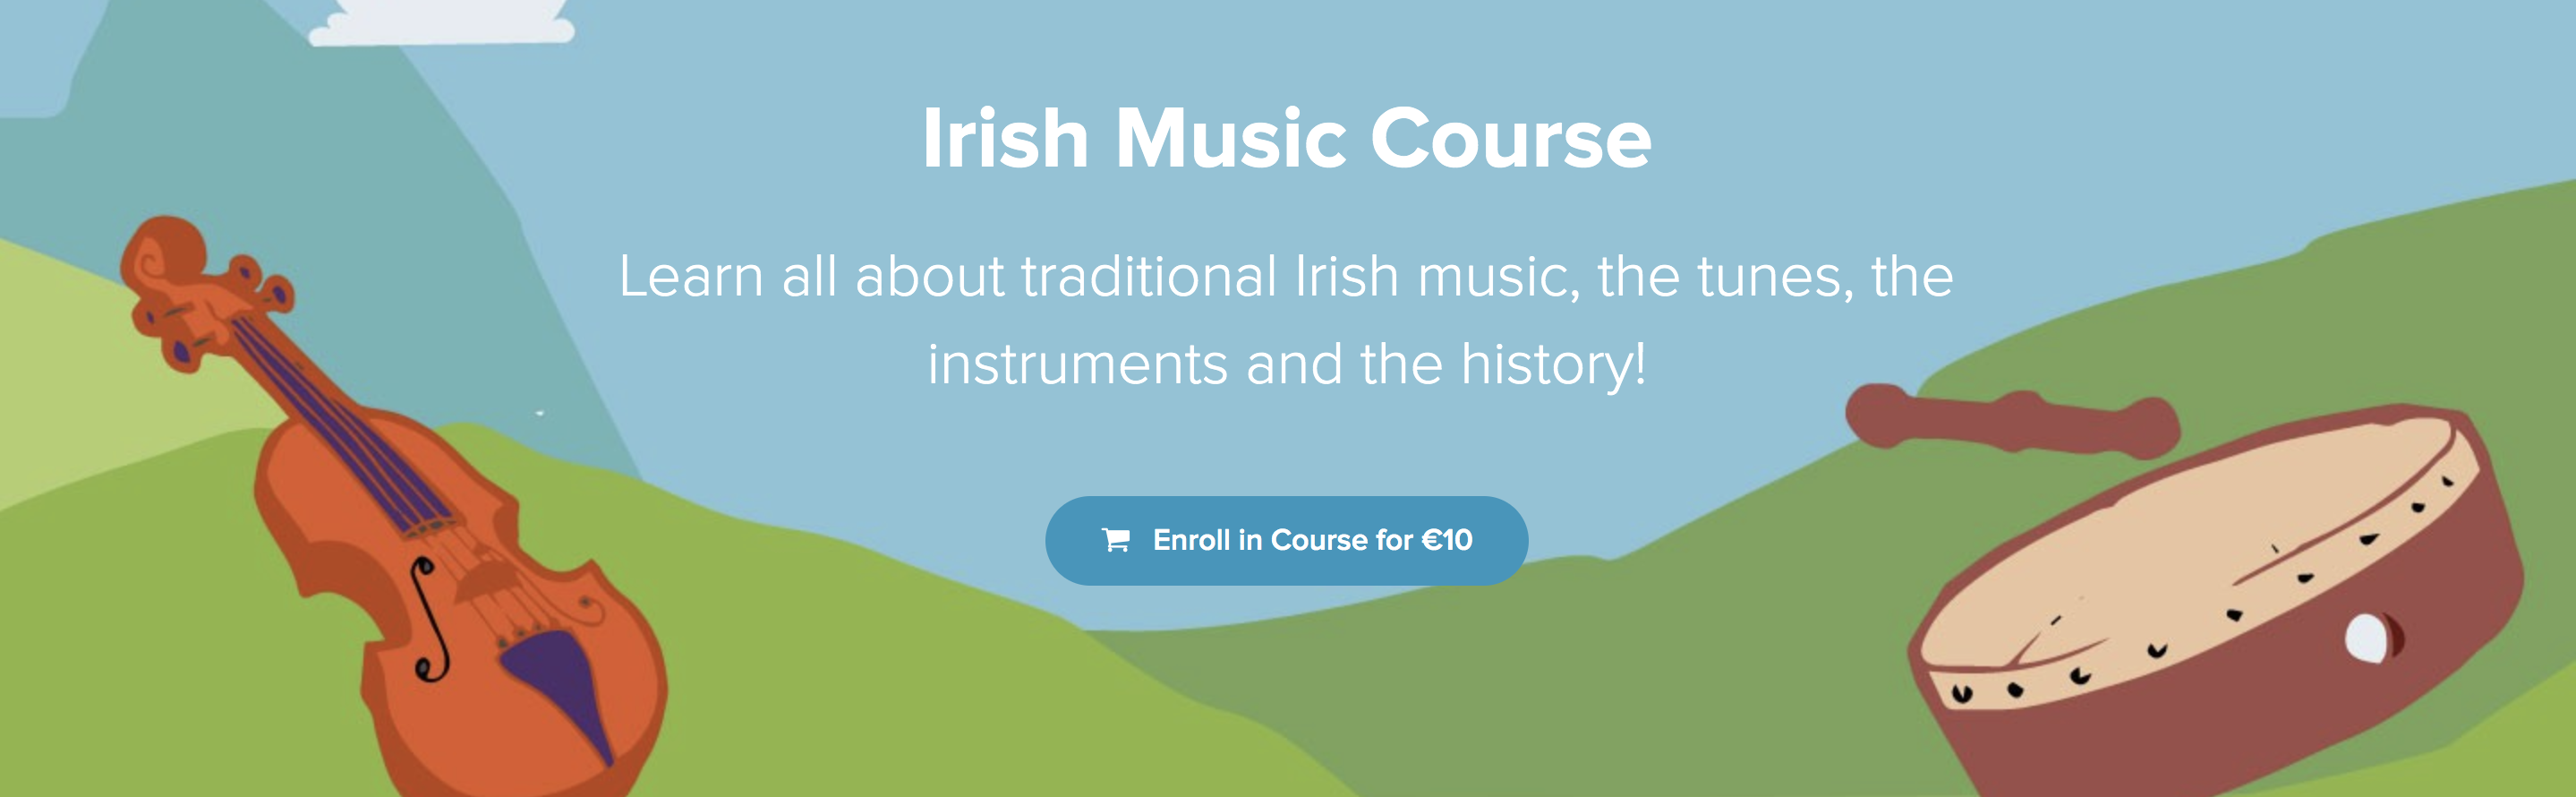 DabbledooMusic Irish Course